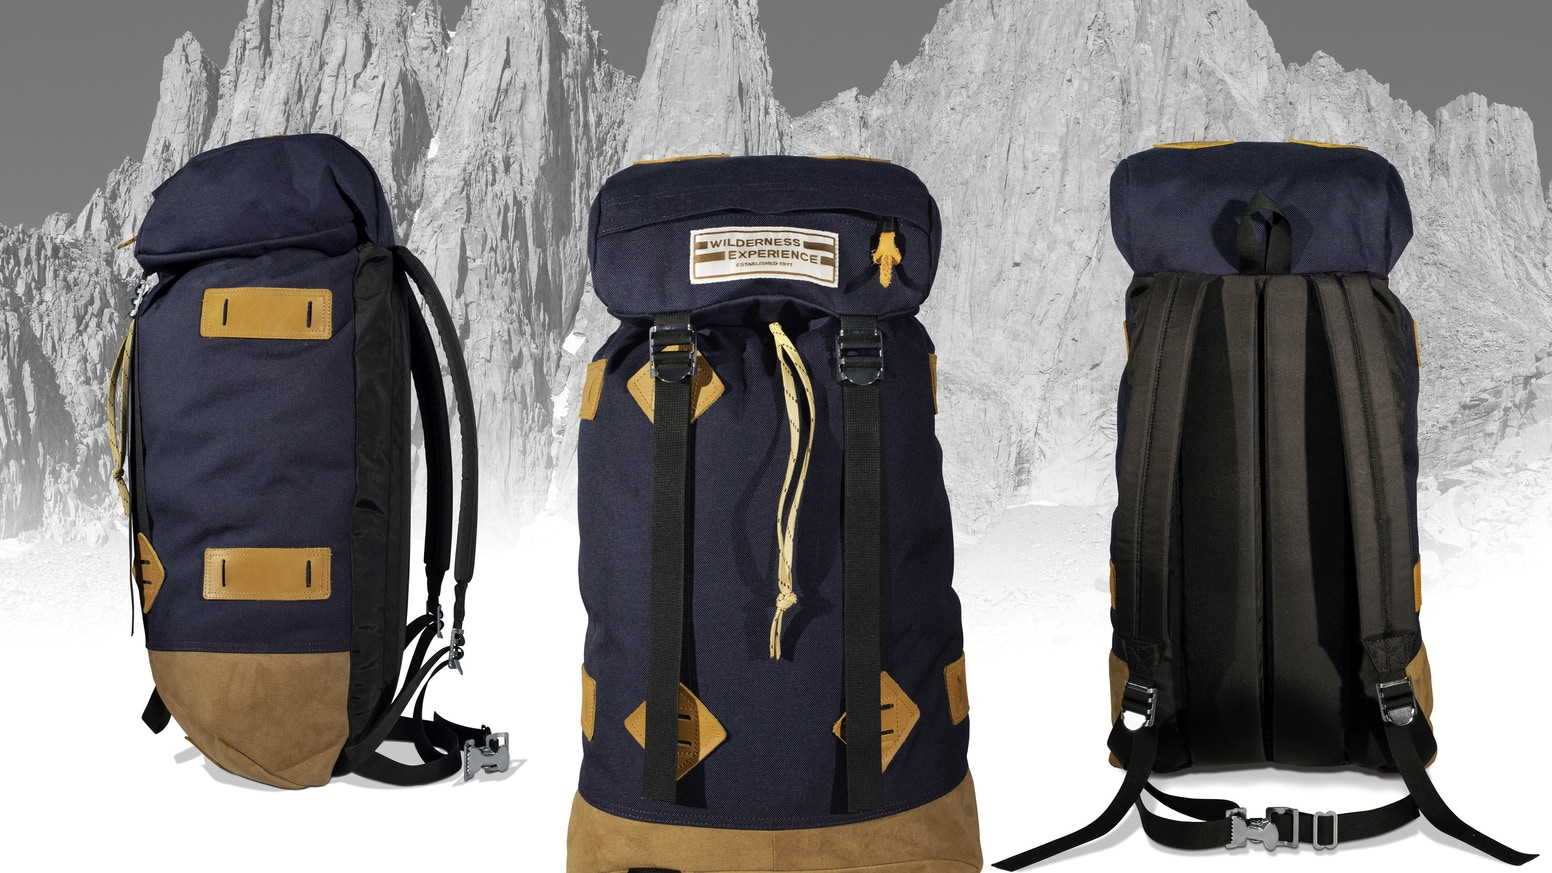 An exact re-creation of the 1974 Klettersack, by the original Wilderness Experience Team. Original pattern, materials & quality.